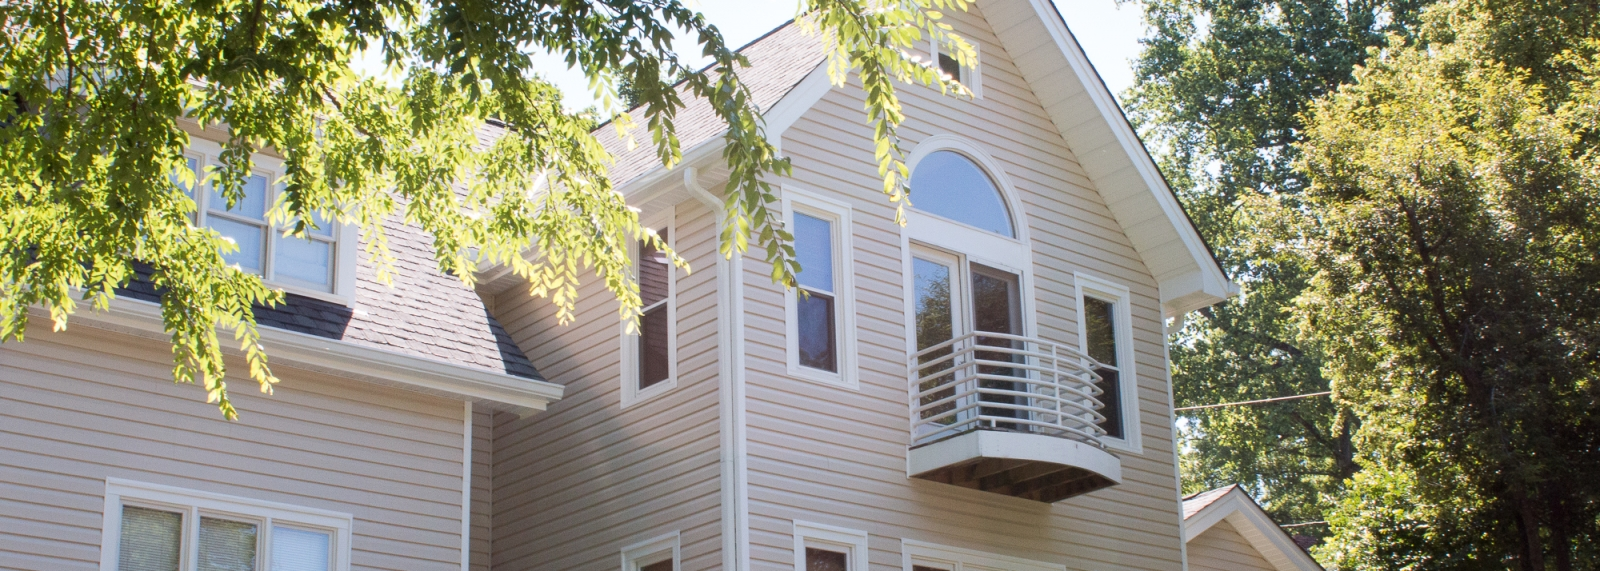 New Gutters Energy Efficient Windows And Vinyl Siding